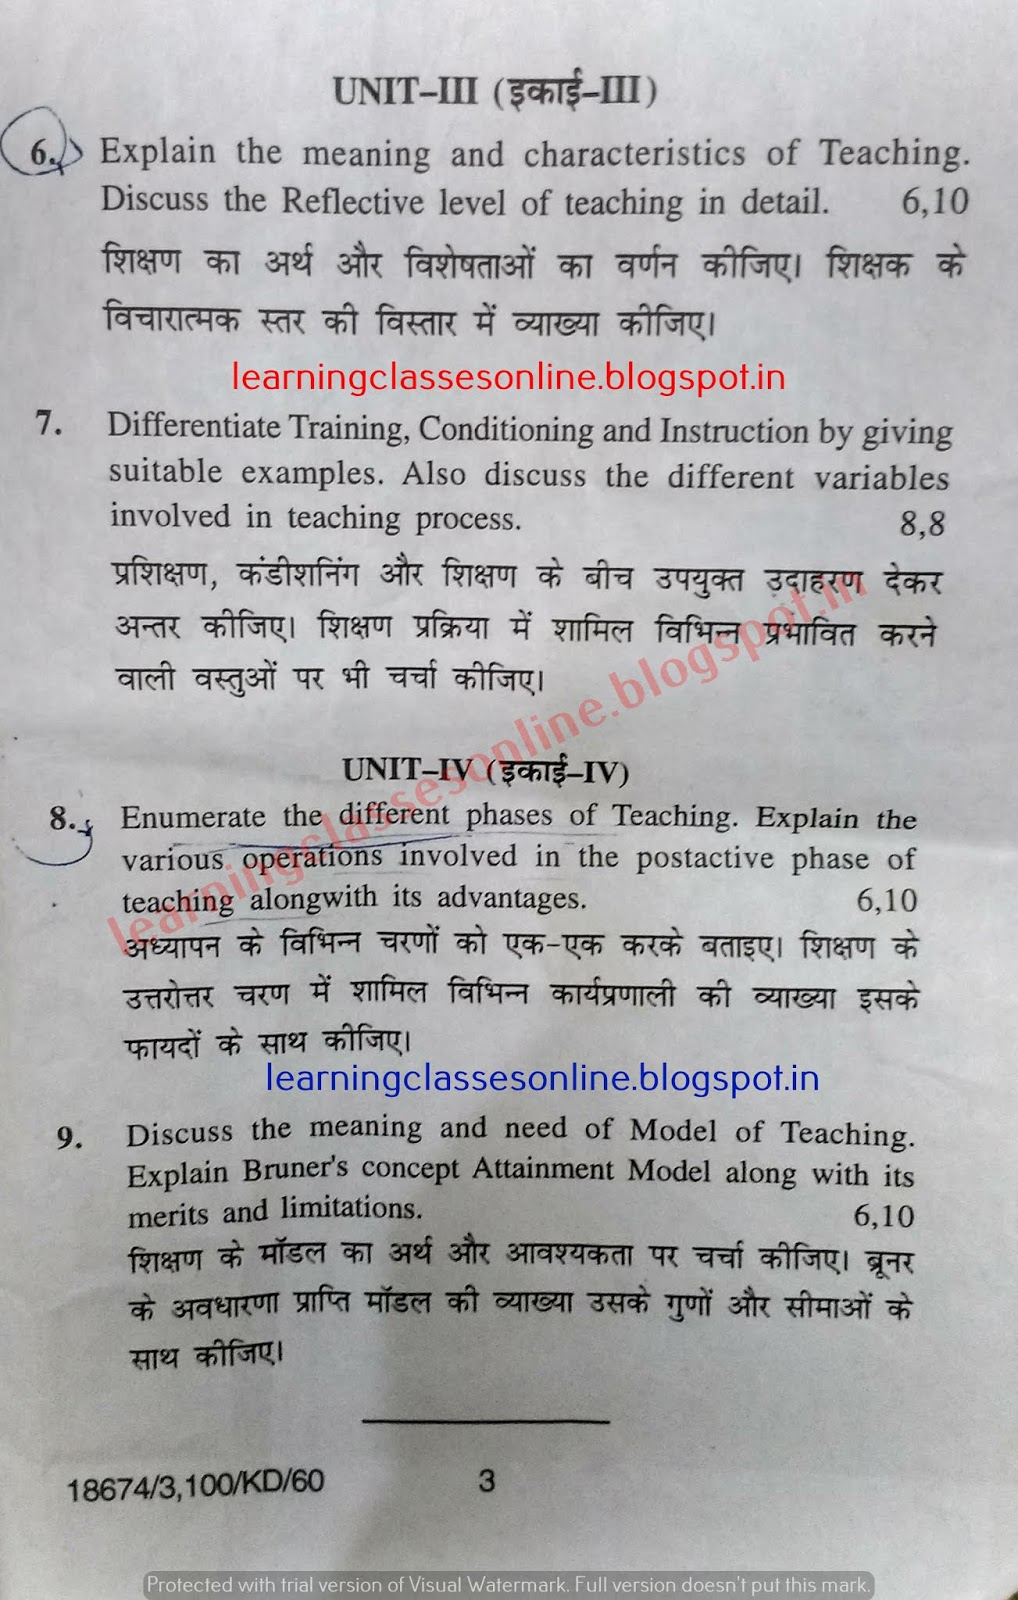 Learning and Teaching 2017 Question Paper